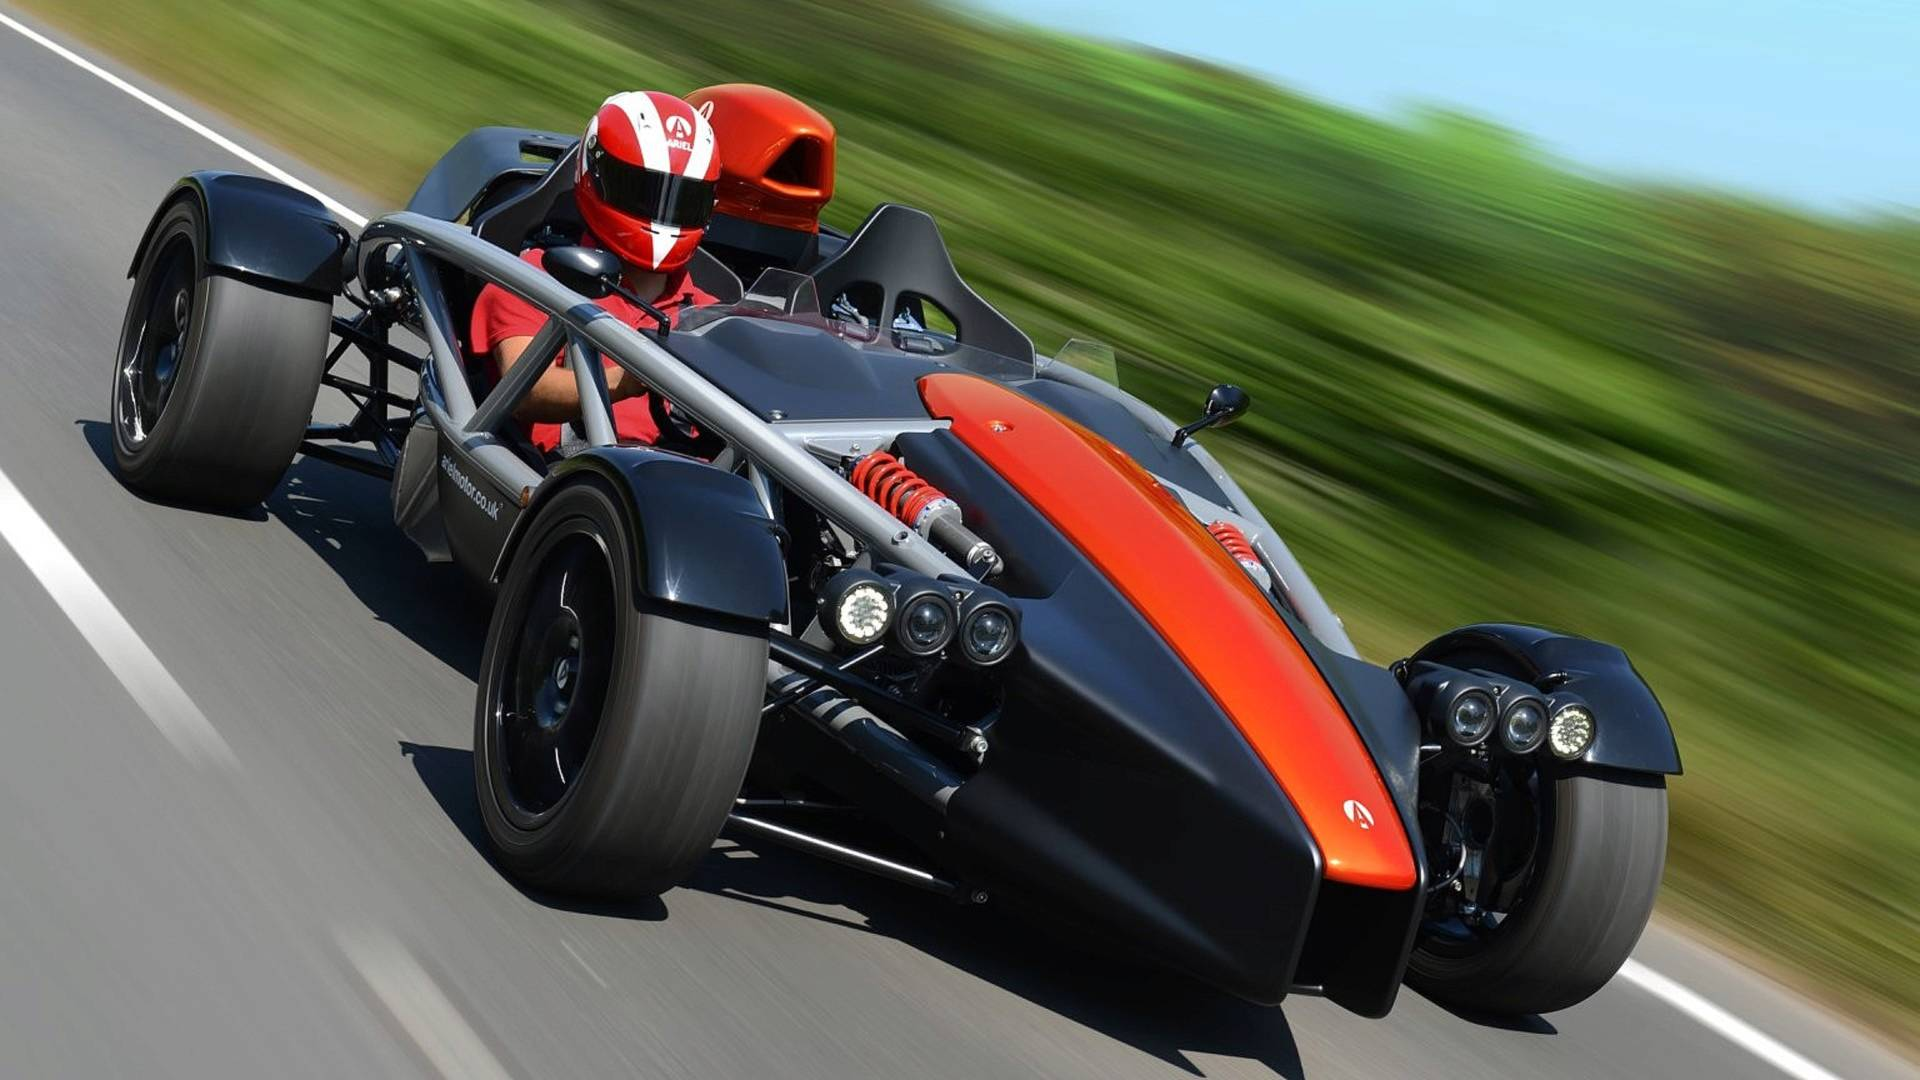 Ariel Atom Owned by Van Halen for Sale on eBay - autoevolution